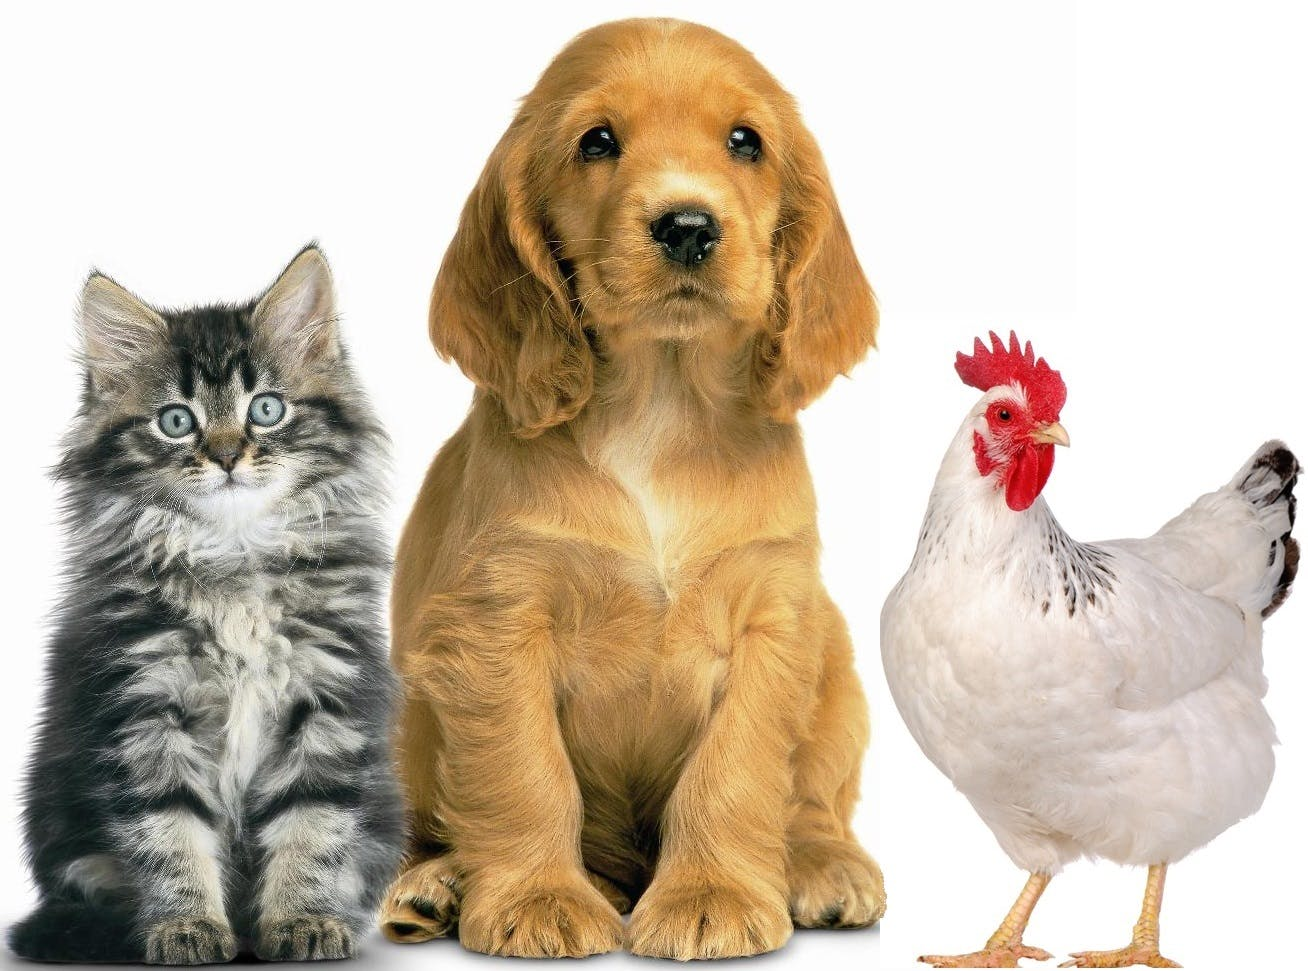 Picture of Cute Pets - Cat, Dog, Chicken